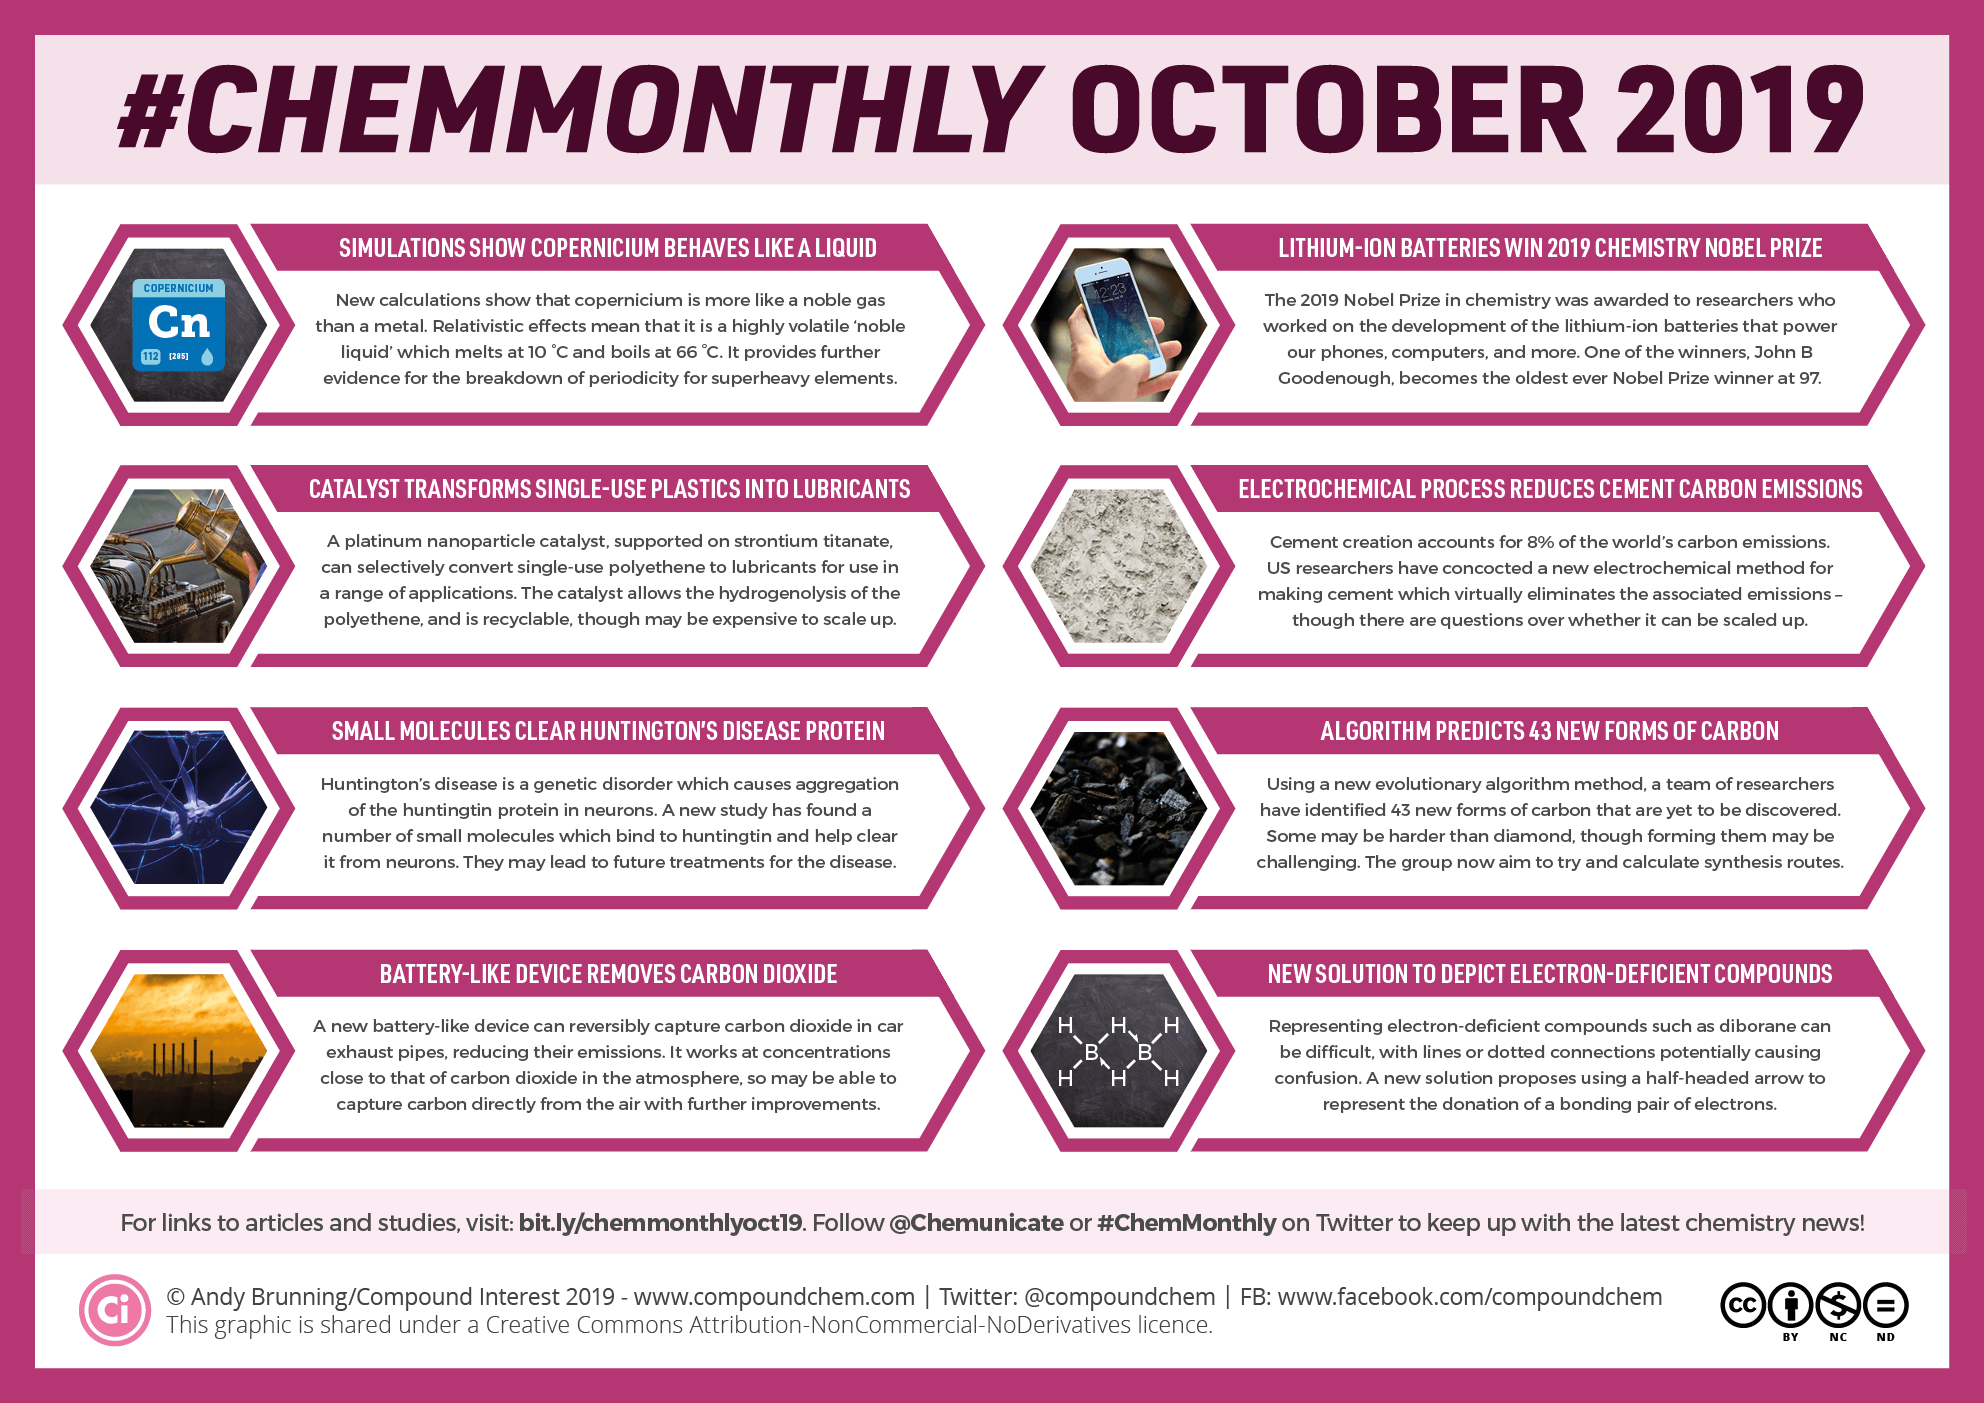 #ChemMonthly October 2019: Transforming single-use plastics, and copernicium's liquid behaviour